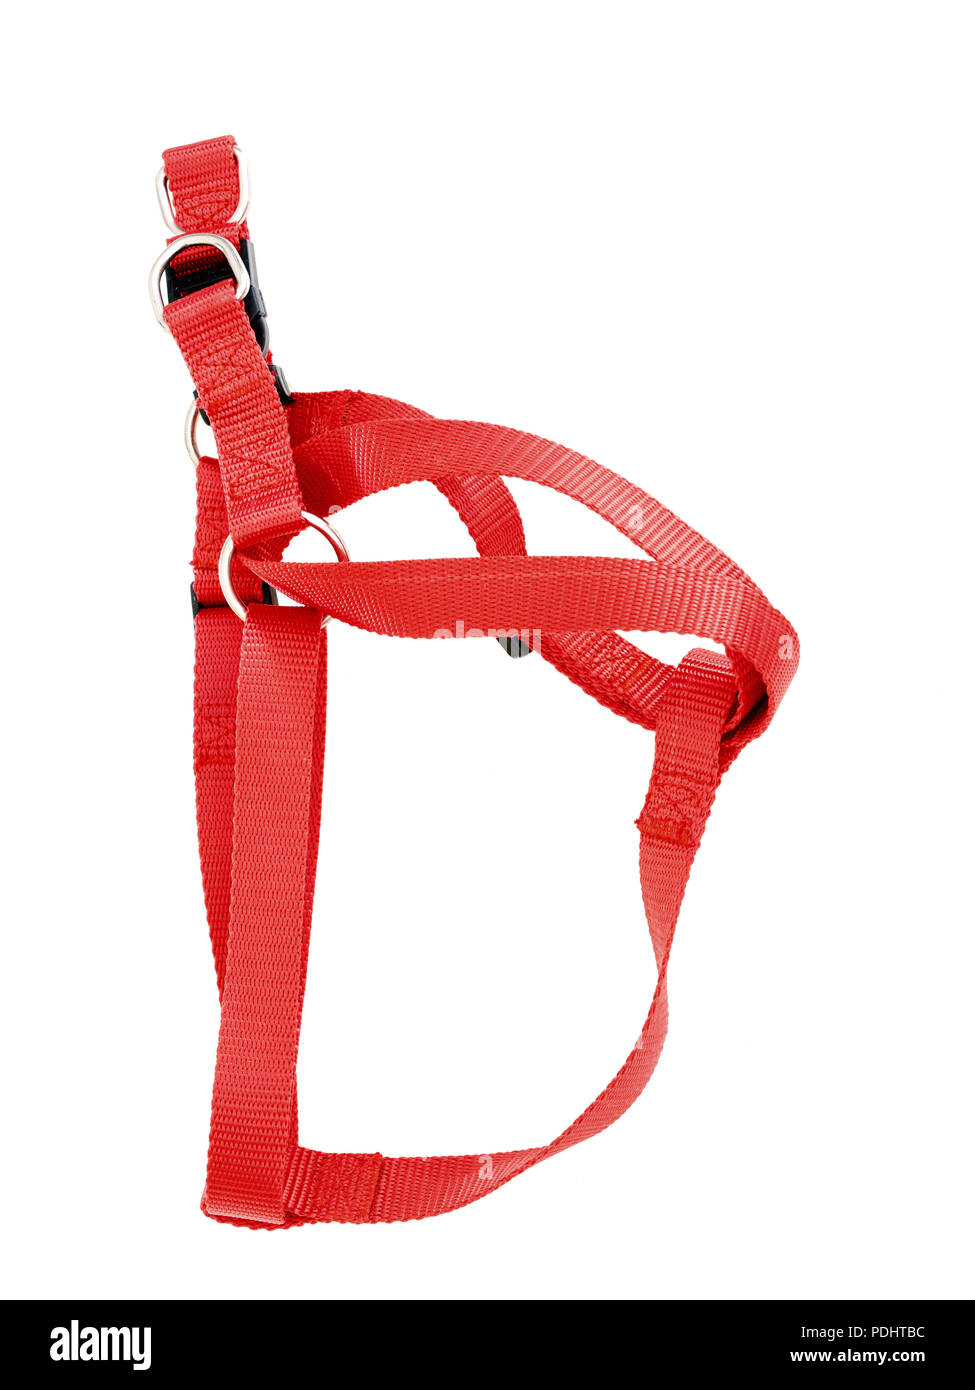 Generic, unbranded red dog harness, isolated on white. - Stock Image